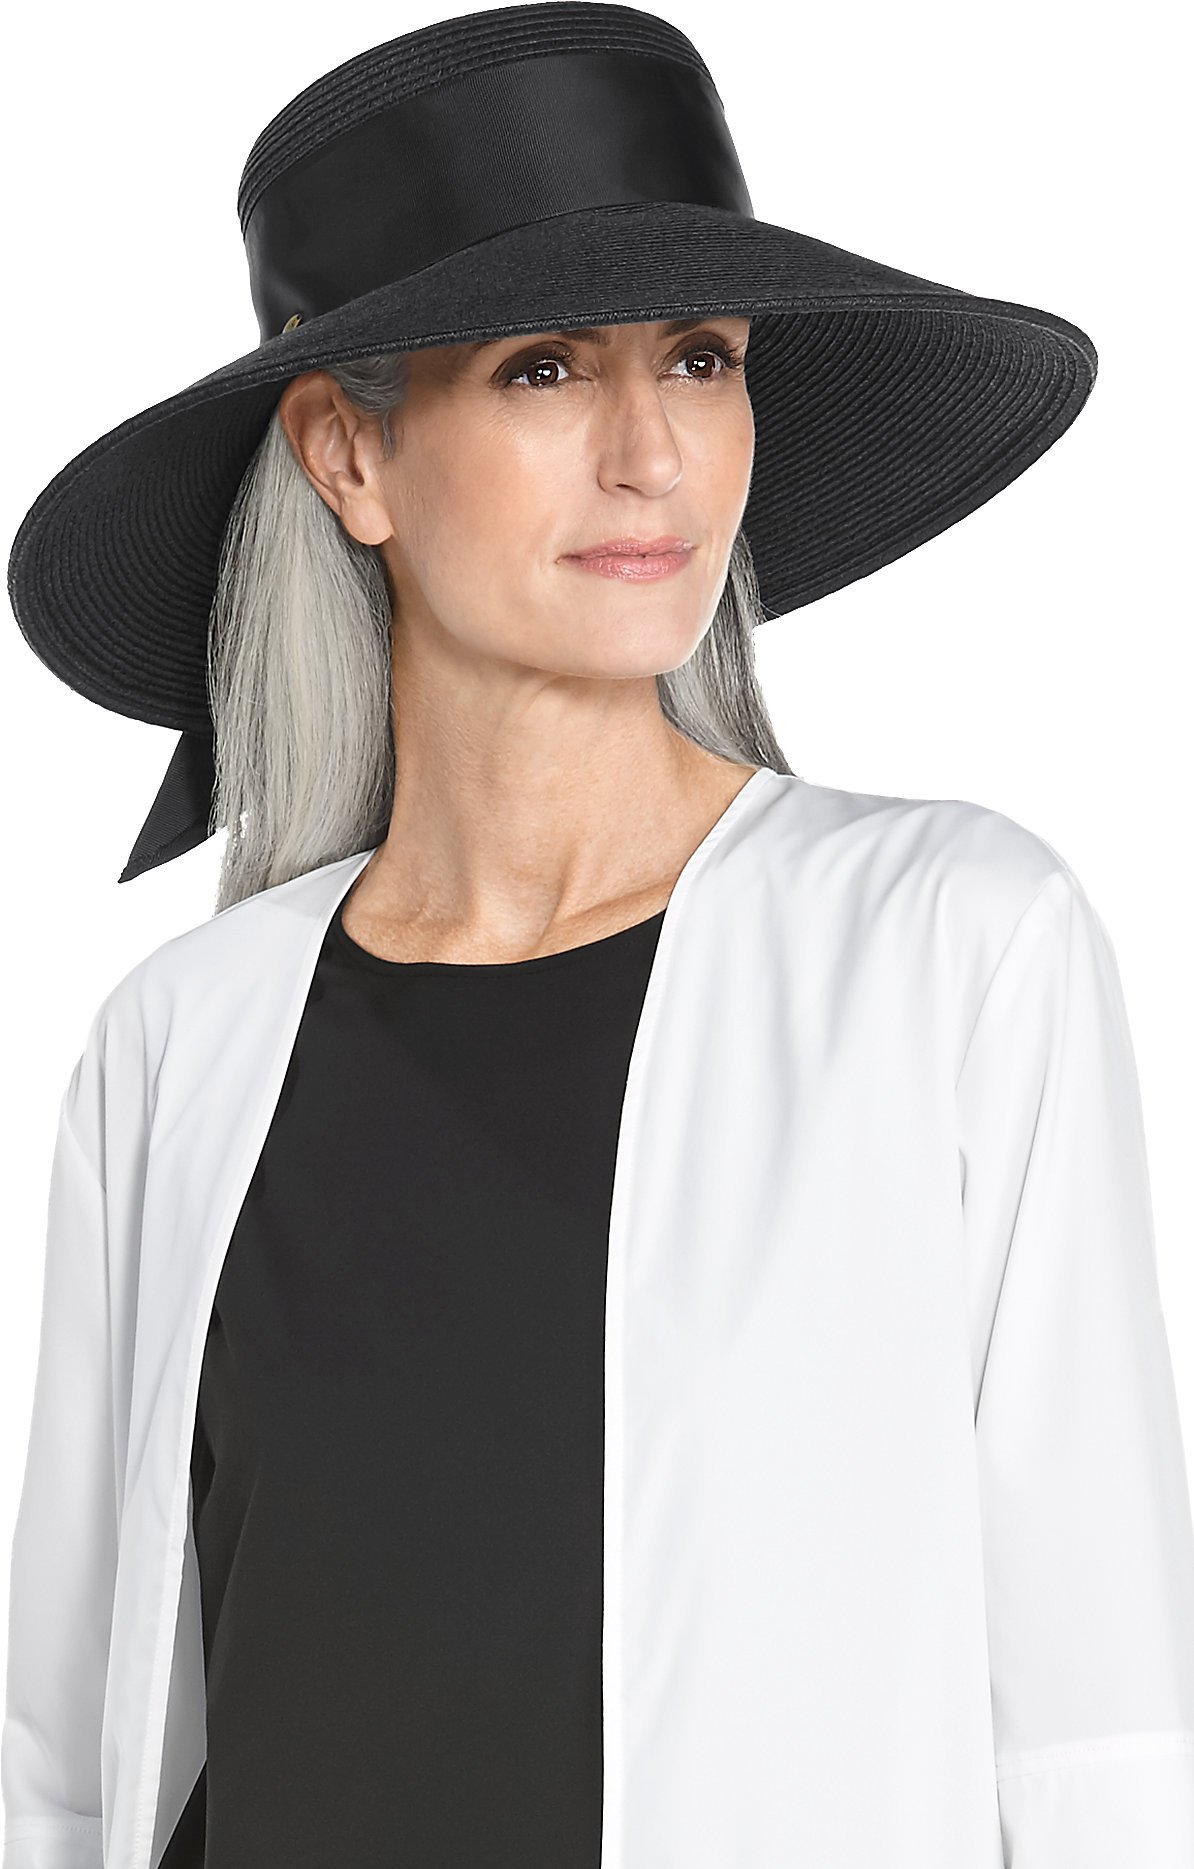 Coolibar UPF 50+ Women's Wide Brim Straw Hat - Sun Protective (One Size- Black)